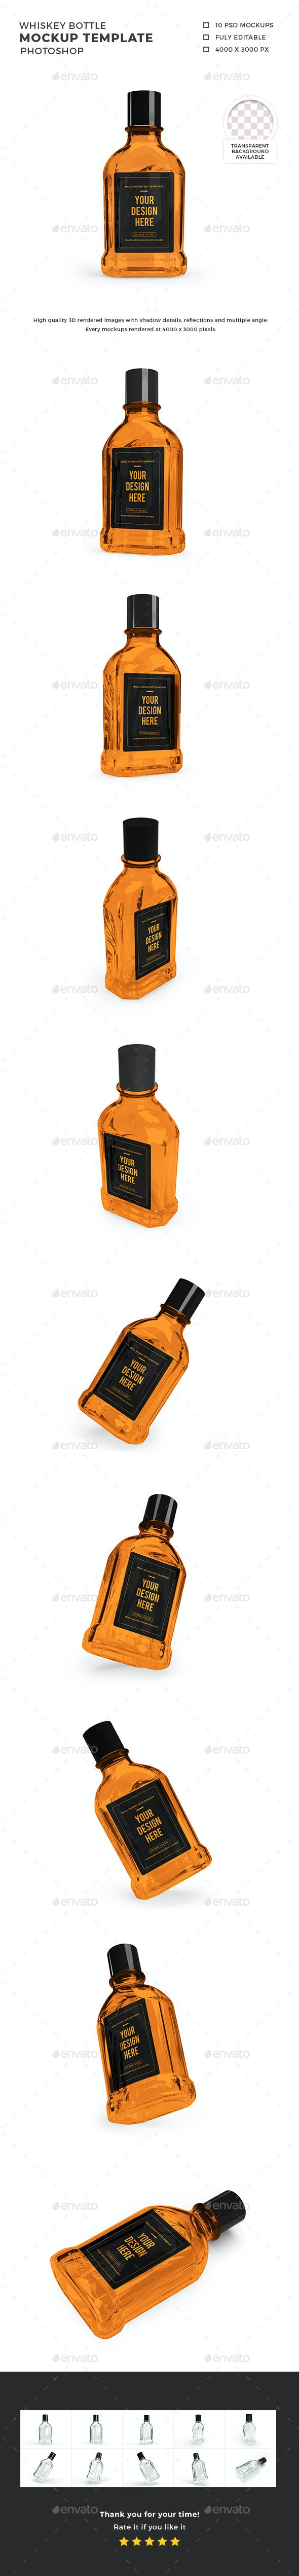 Whiskey Bottle Mockup Template Set - Food and Drink Packaging